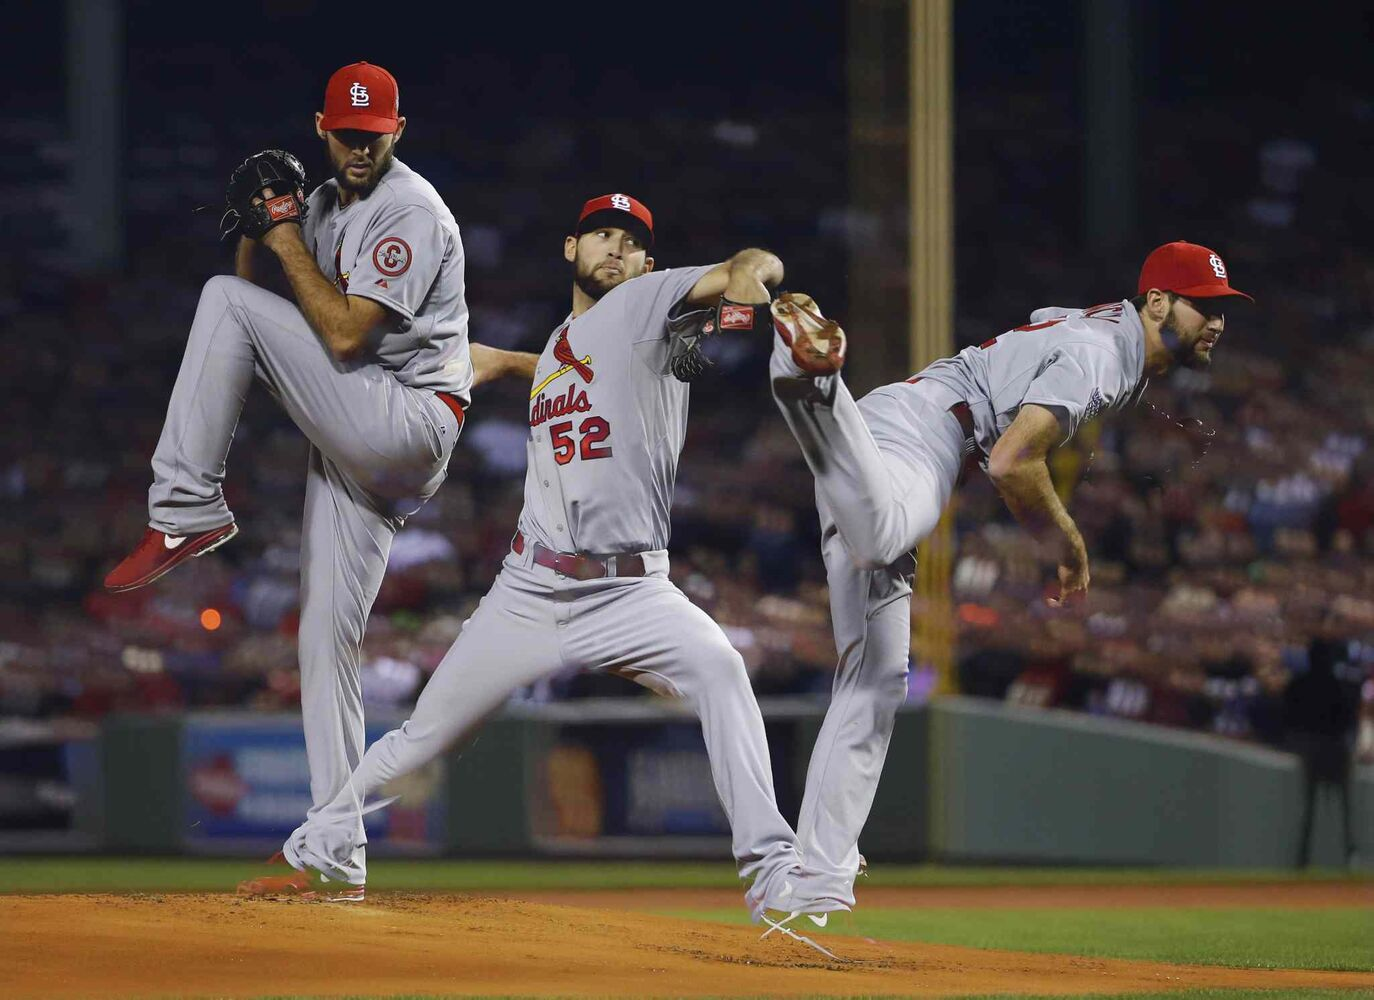 In a multiple exposure, St. Louis Cardinals starting pitcher Michael Wacha throws during the first inning. (Matt Slocum / The Associated Press)